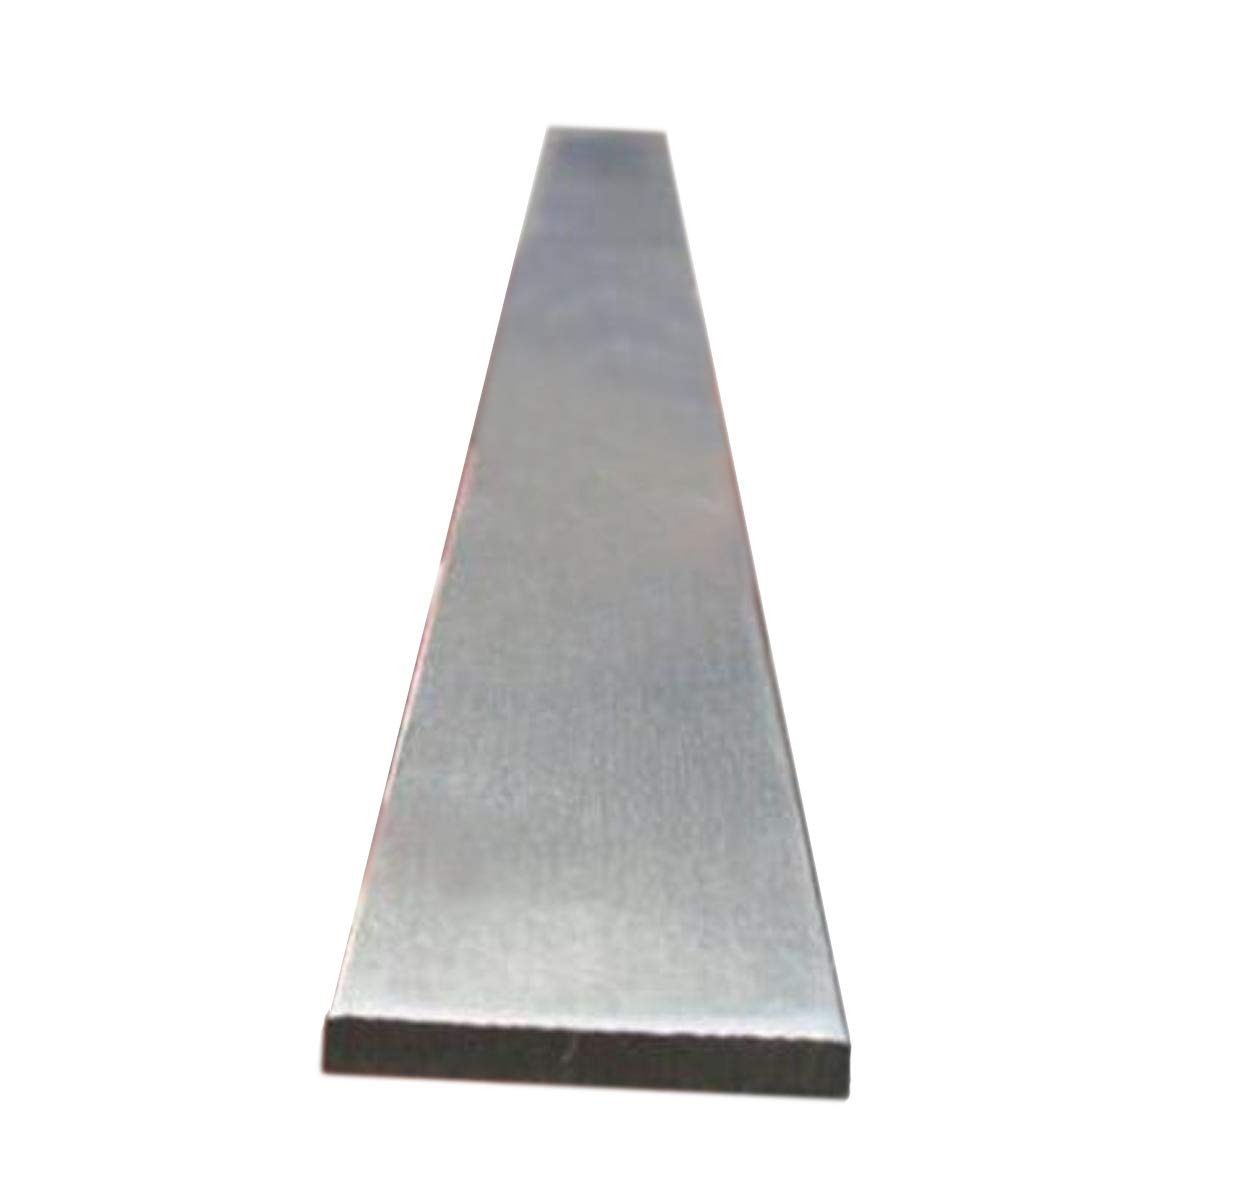 2pcs 4mm x 25mm x 330mm 13 inch 304 Stainless Steel Flat Bar Sheet